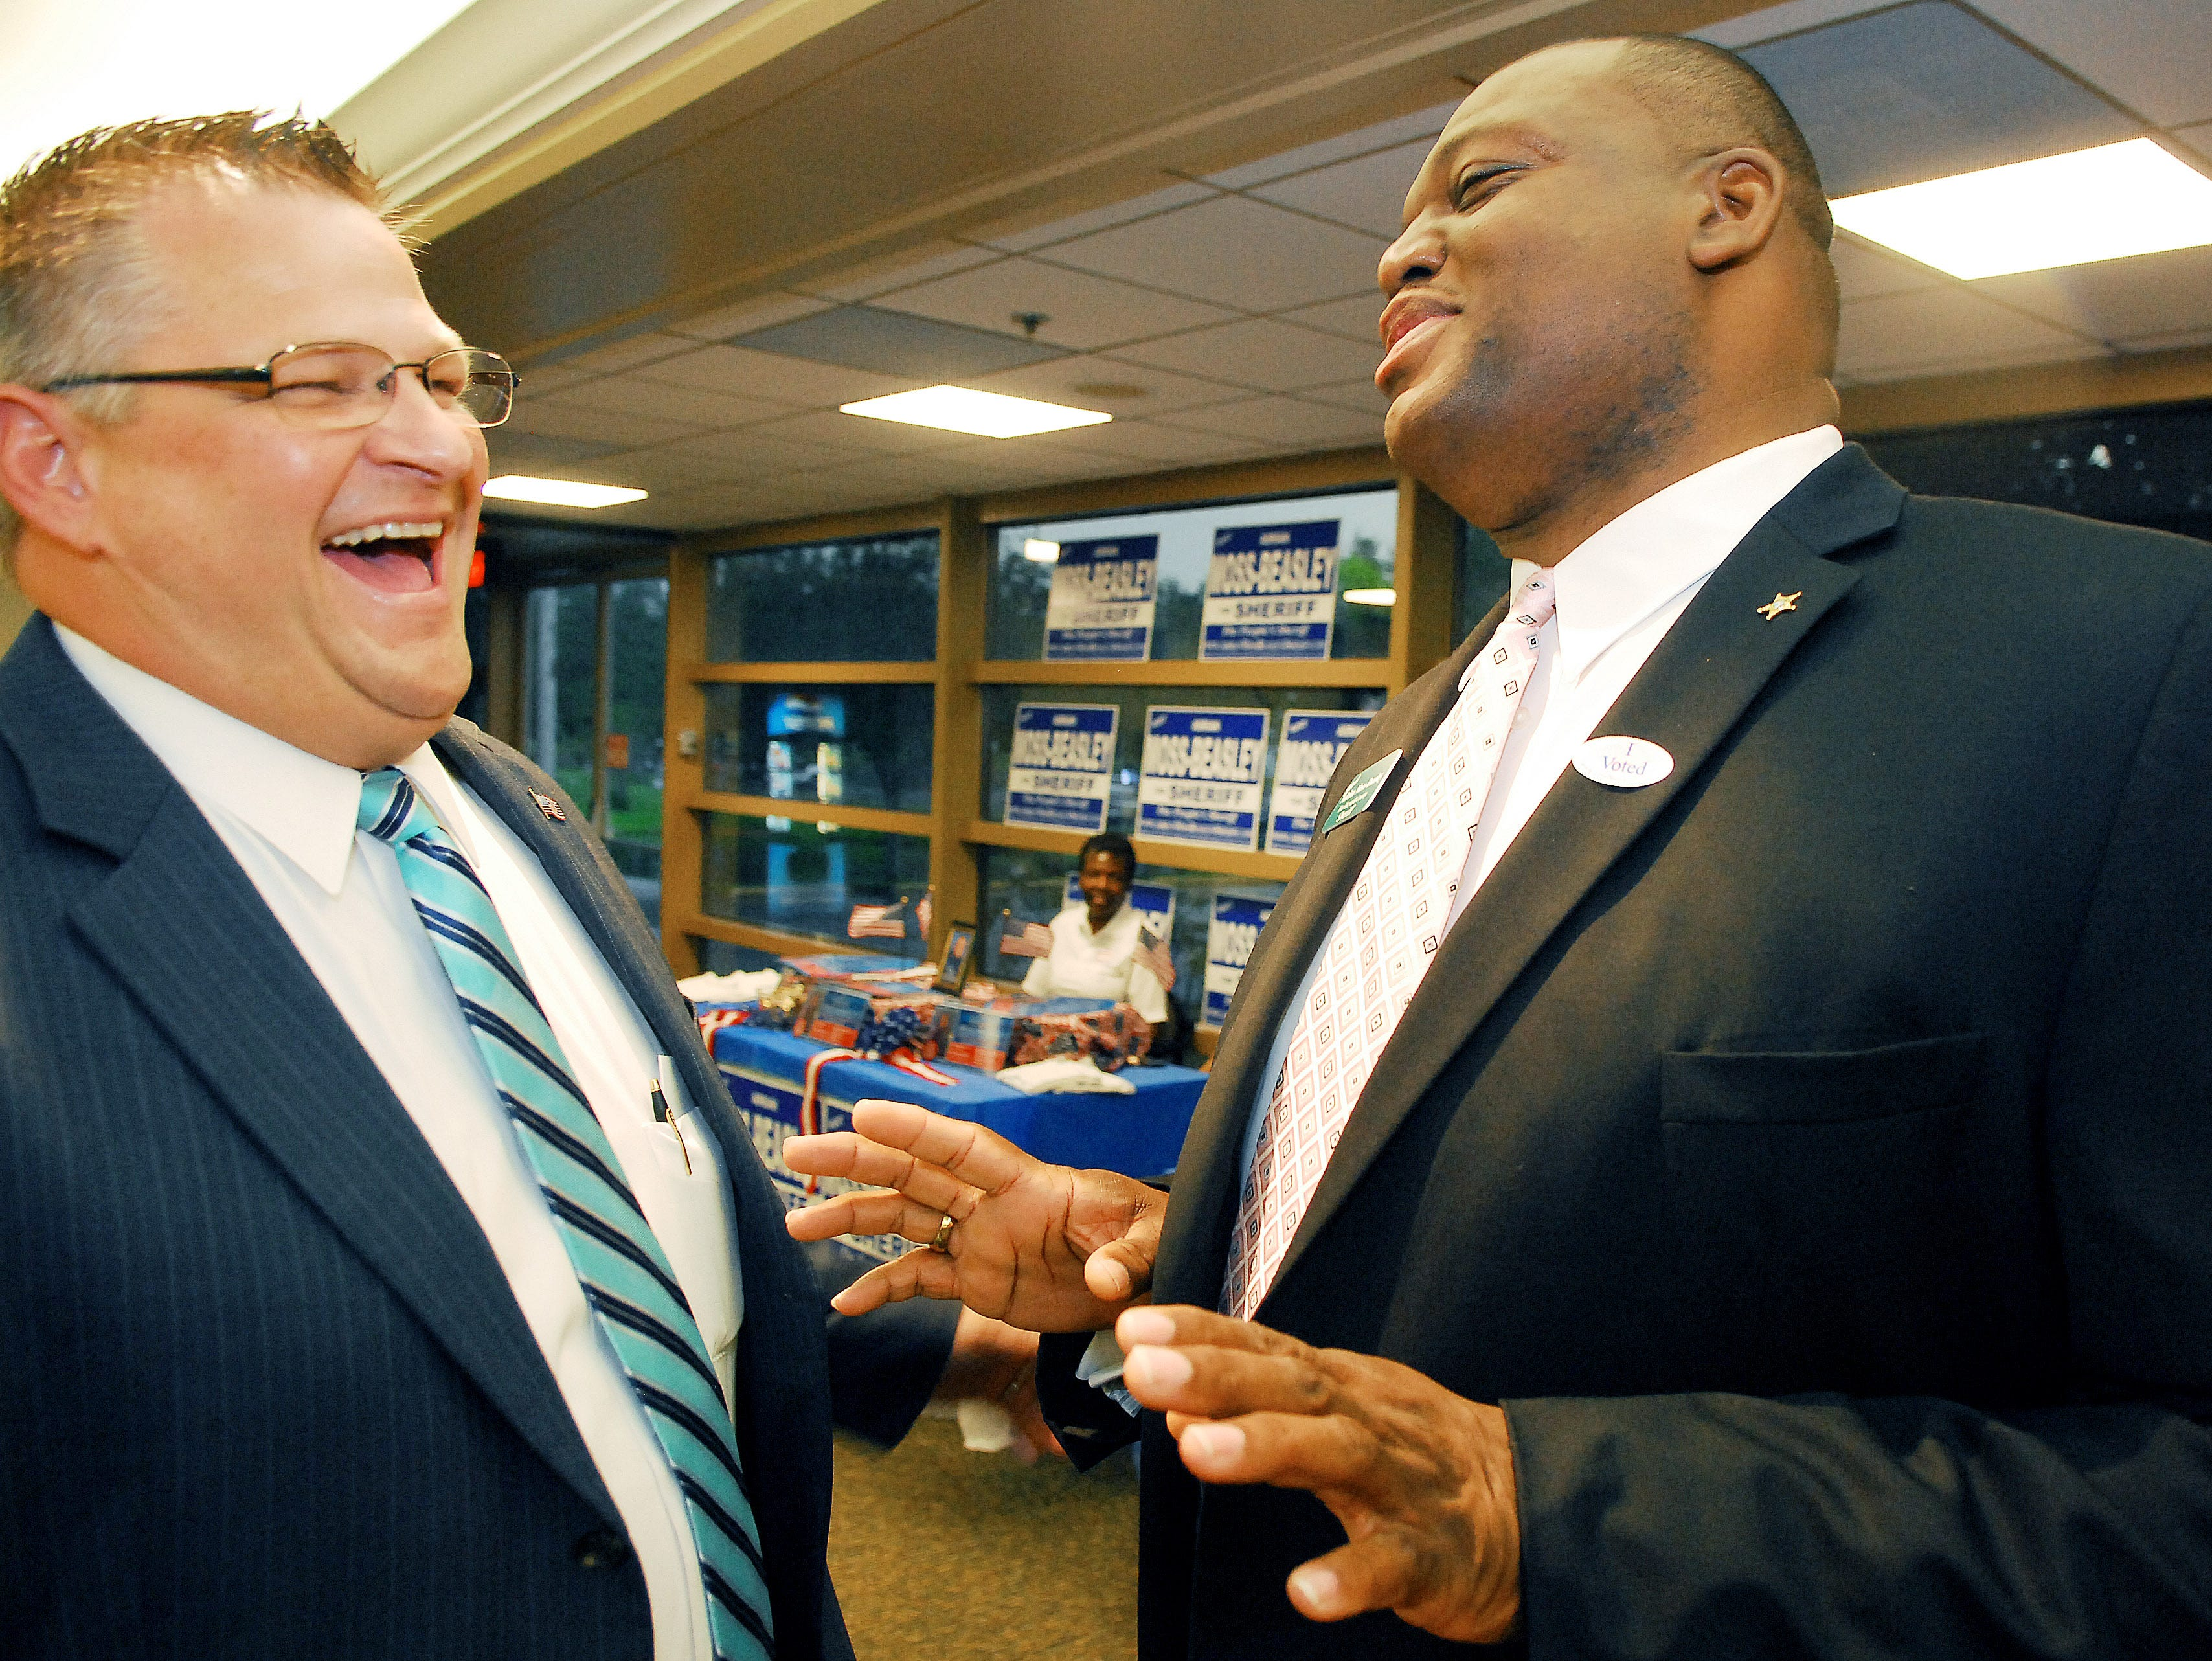 Sheriff candidates Wayne Ivey, left, and Adrian Moss-Beasley joke with each other at a Political Hobnob, when they ran against each other.